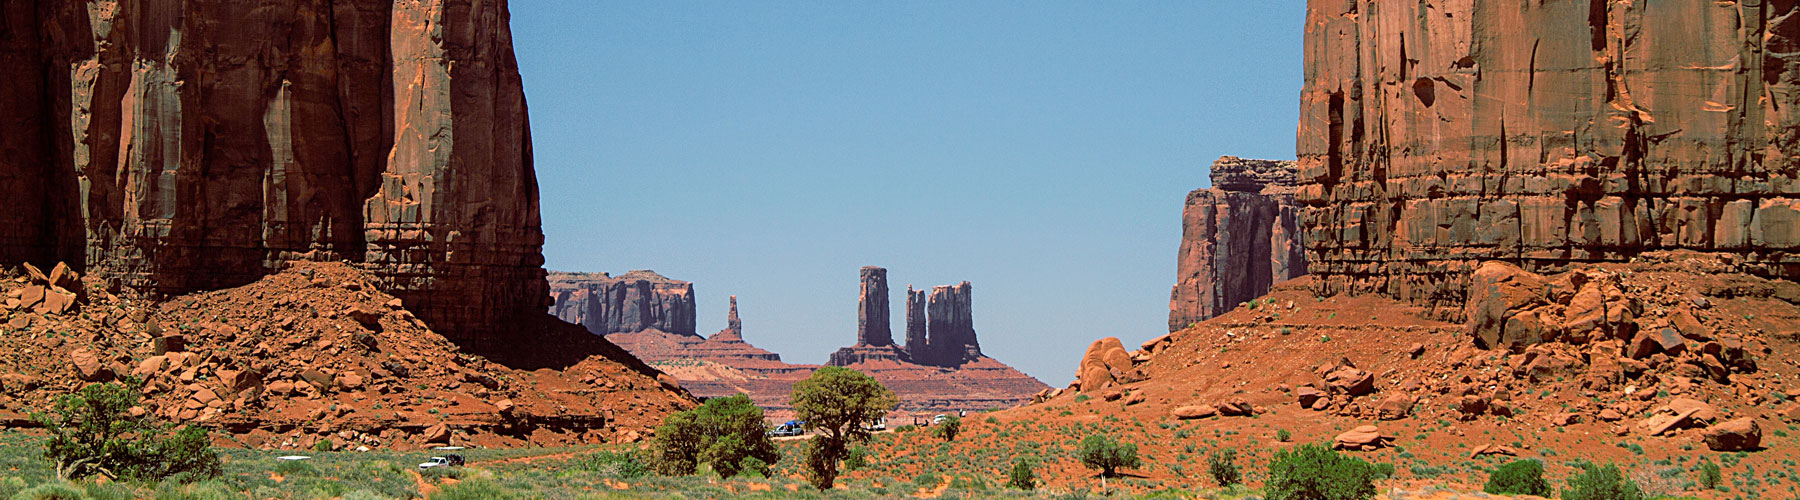 Desert rock formations